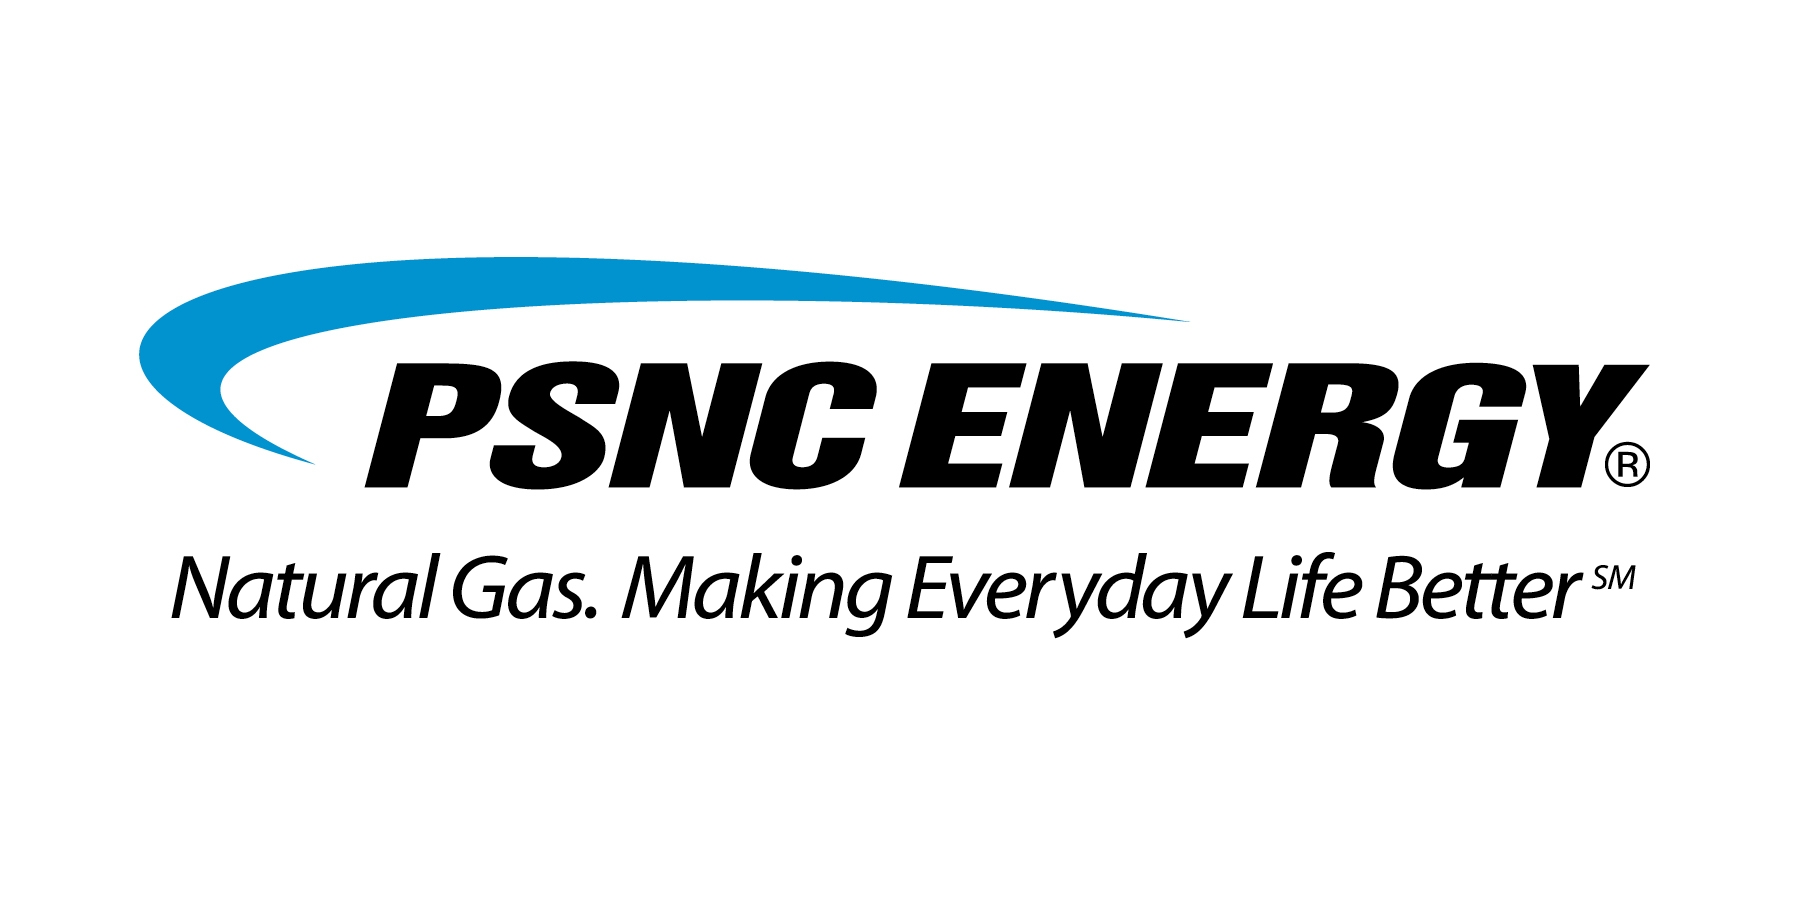 (2-18-13) PSNC Energy logo and tagline (color - no flame).jpg